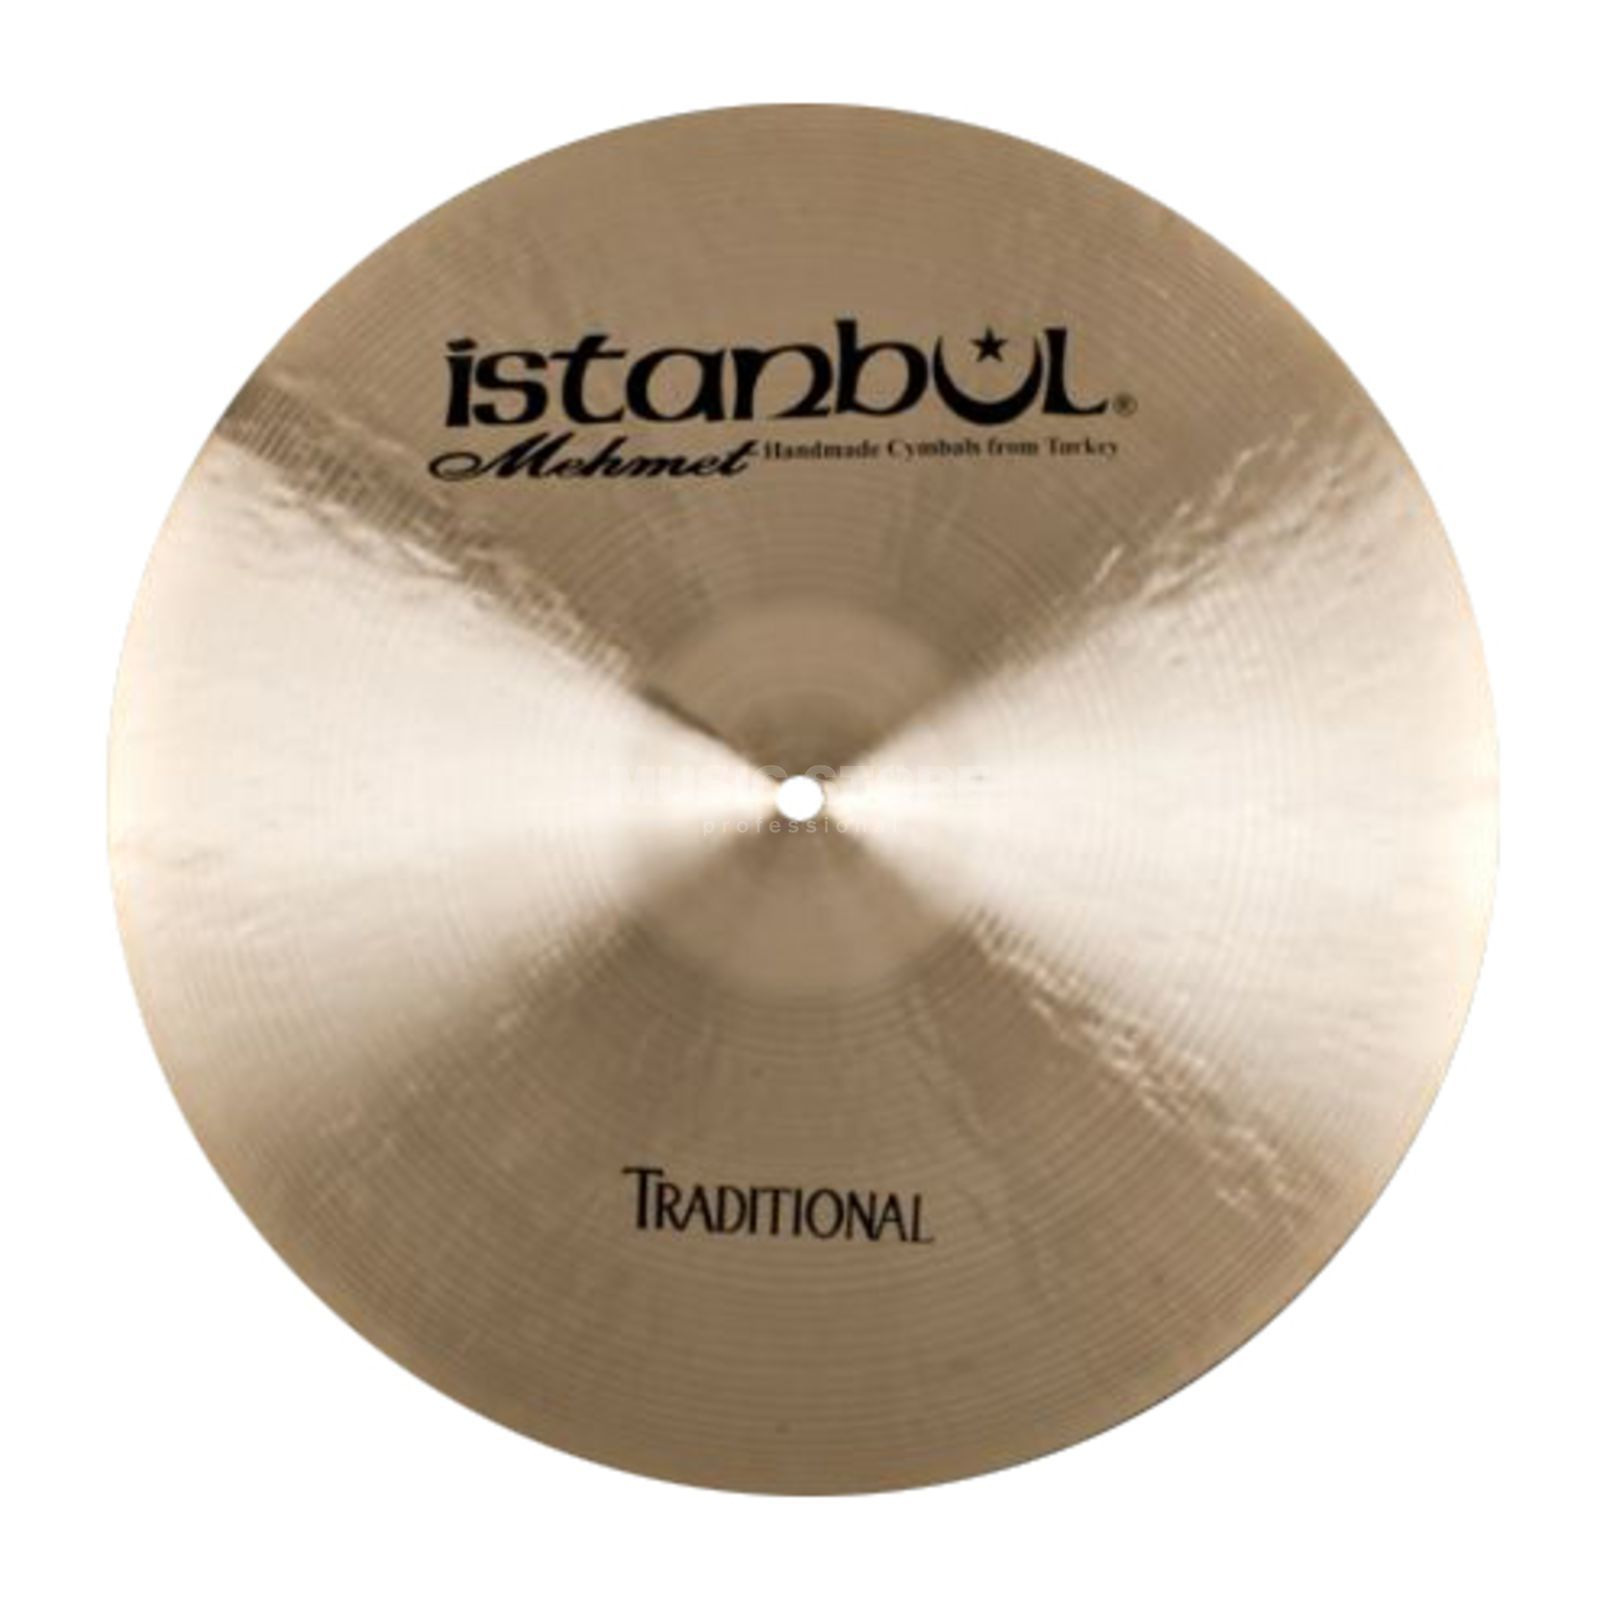 "Istanbul Traditional Heavy Crash 18"", CVY19 Immagine prodotto"